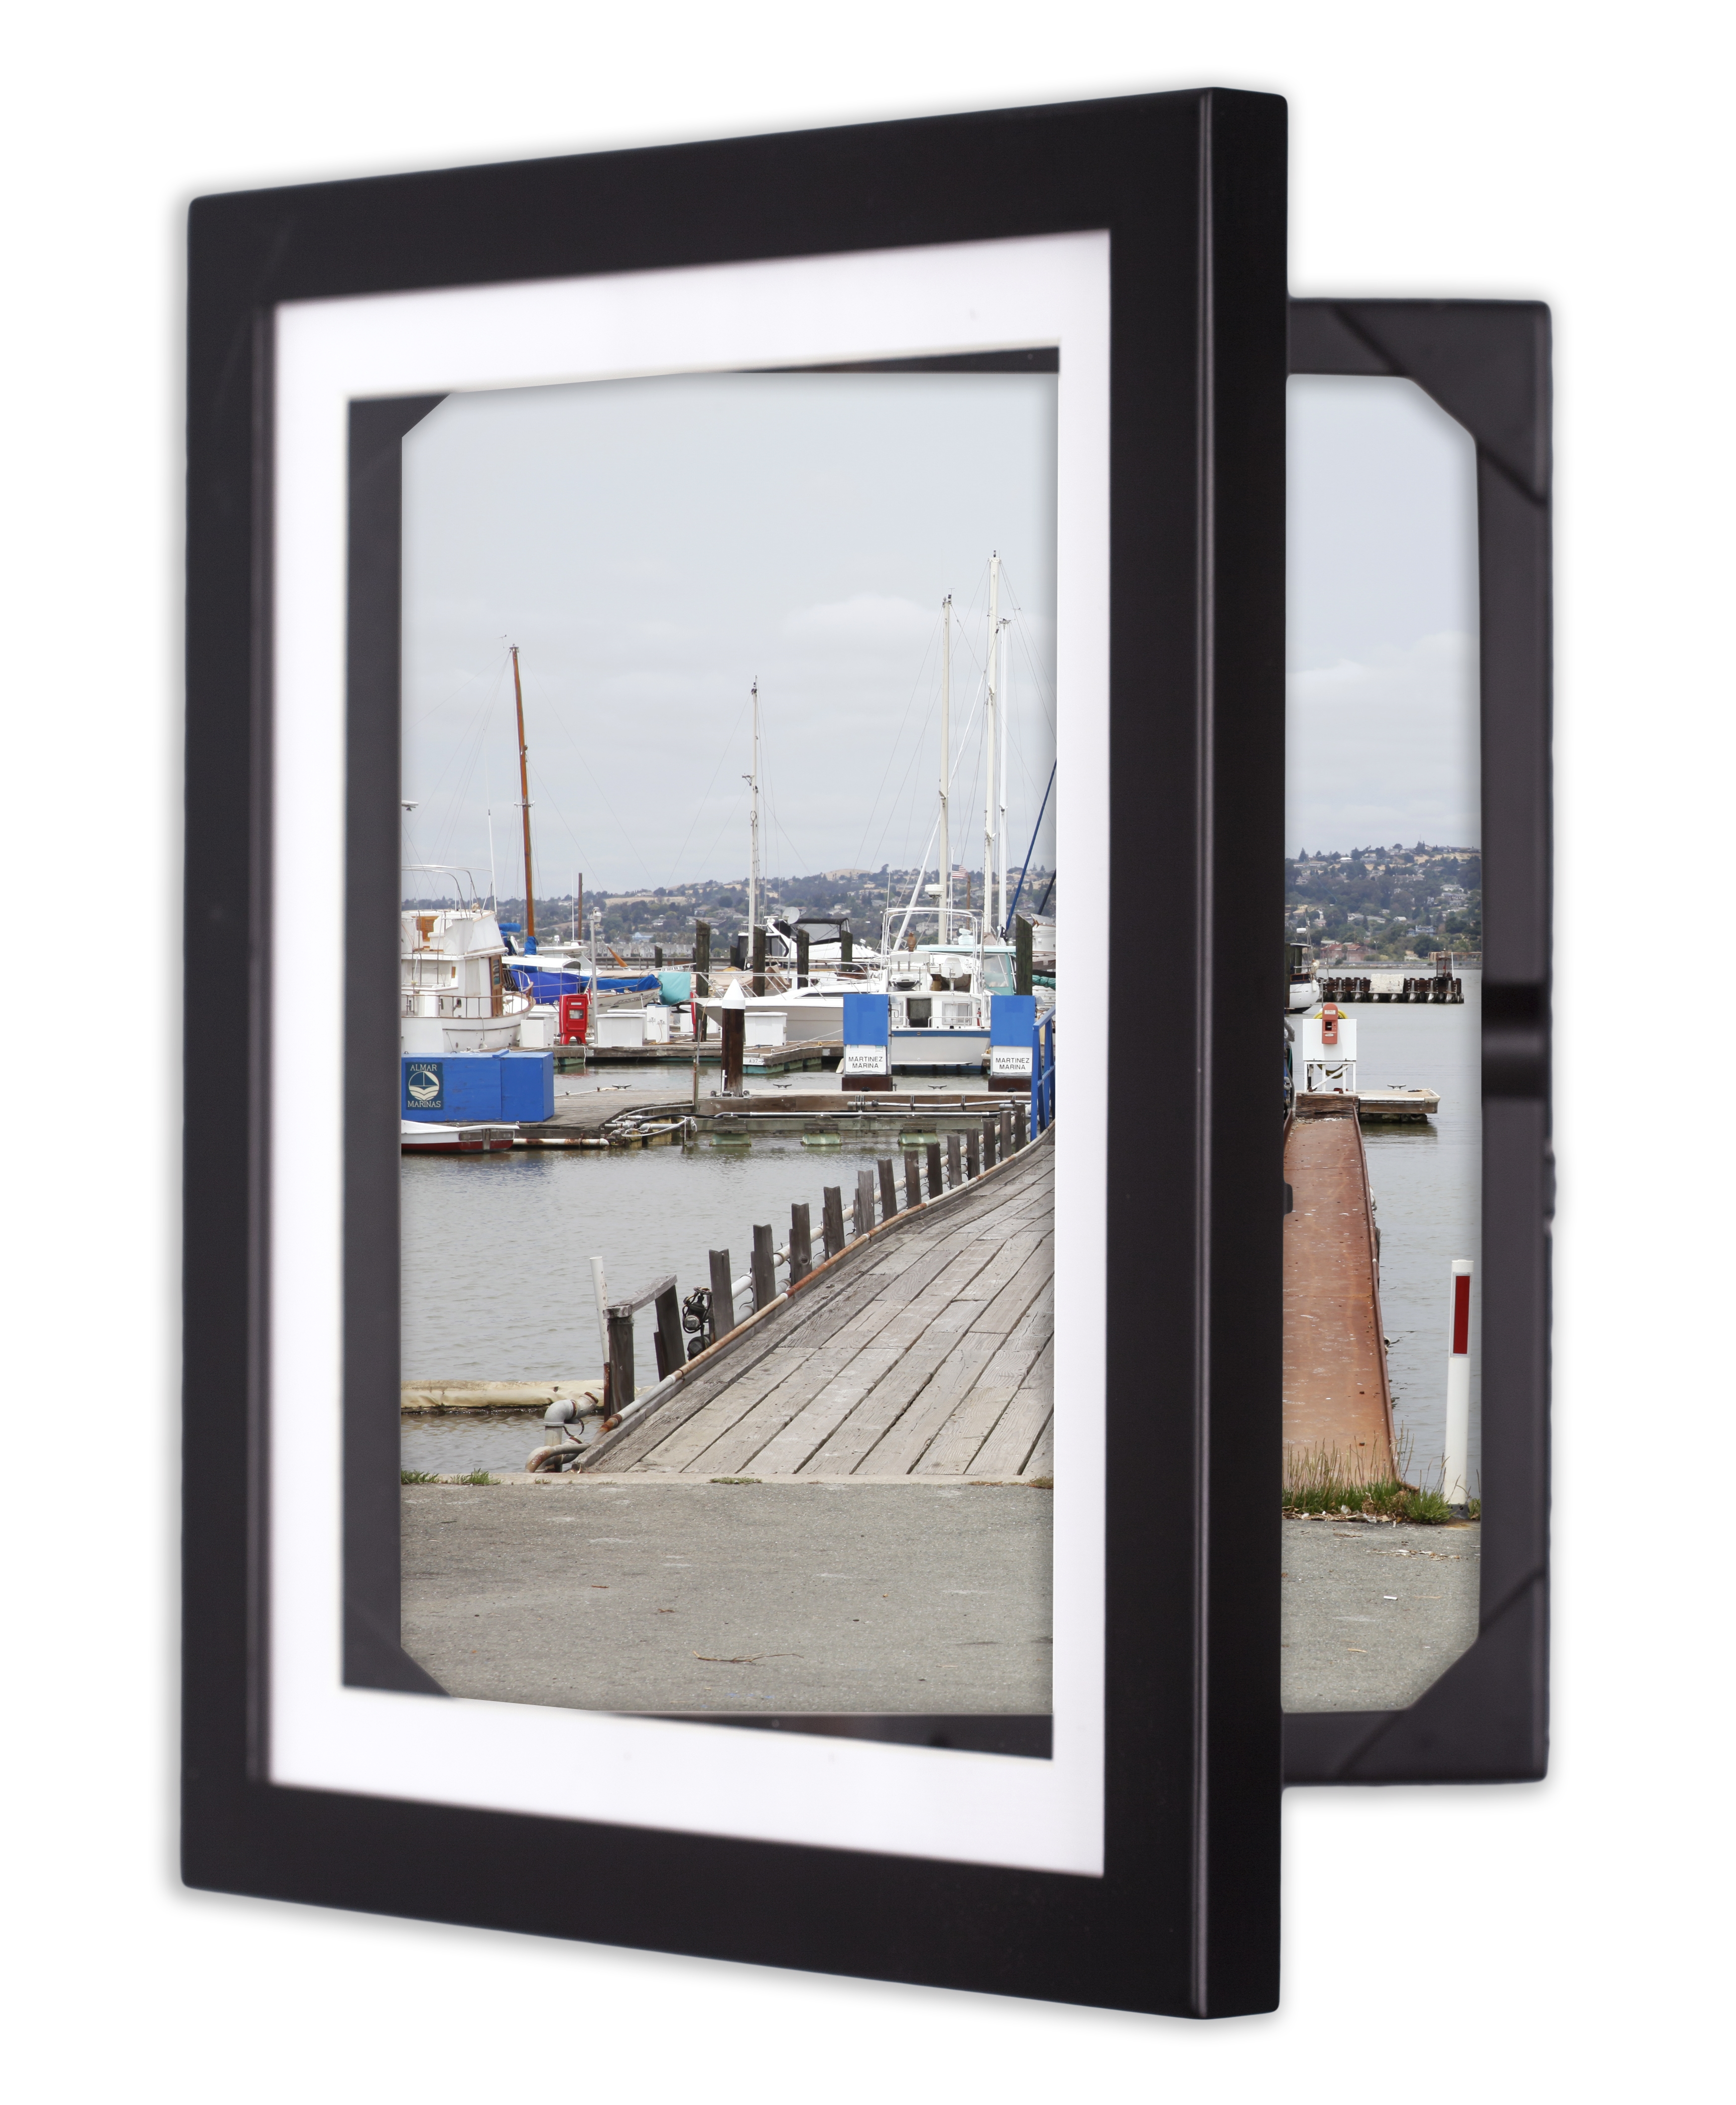 Dynamic Frames Dynamic Duo 1 Frame For Either 8x10